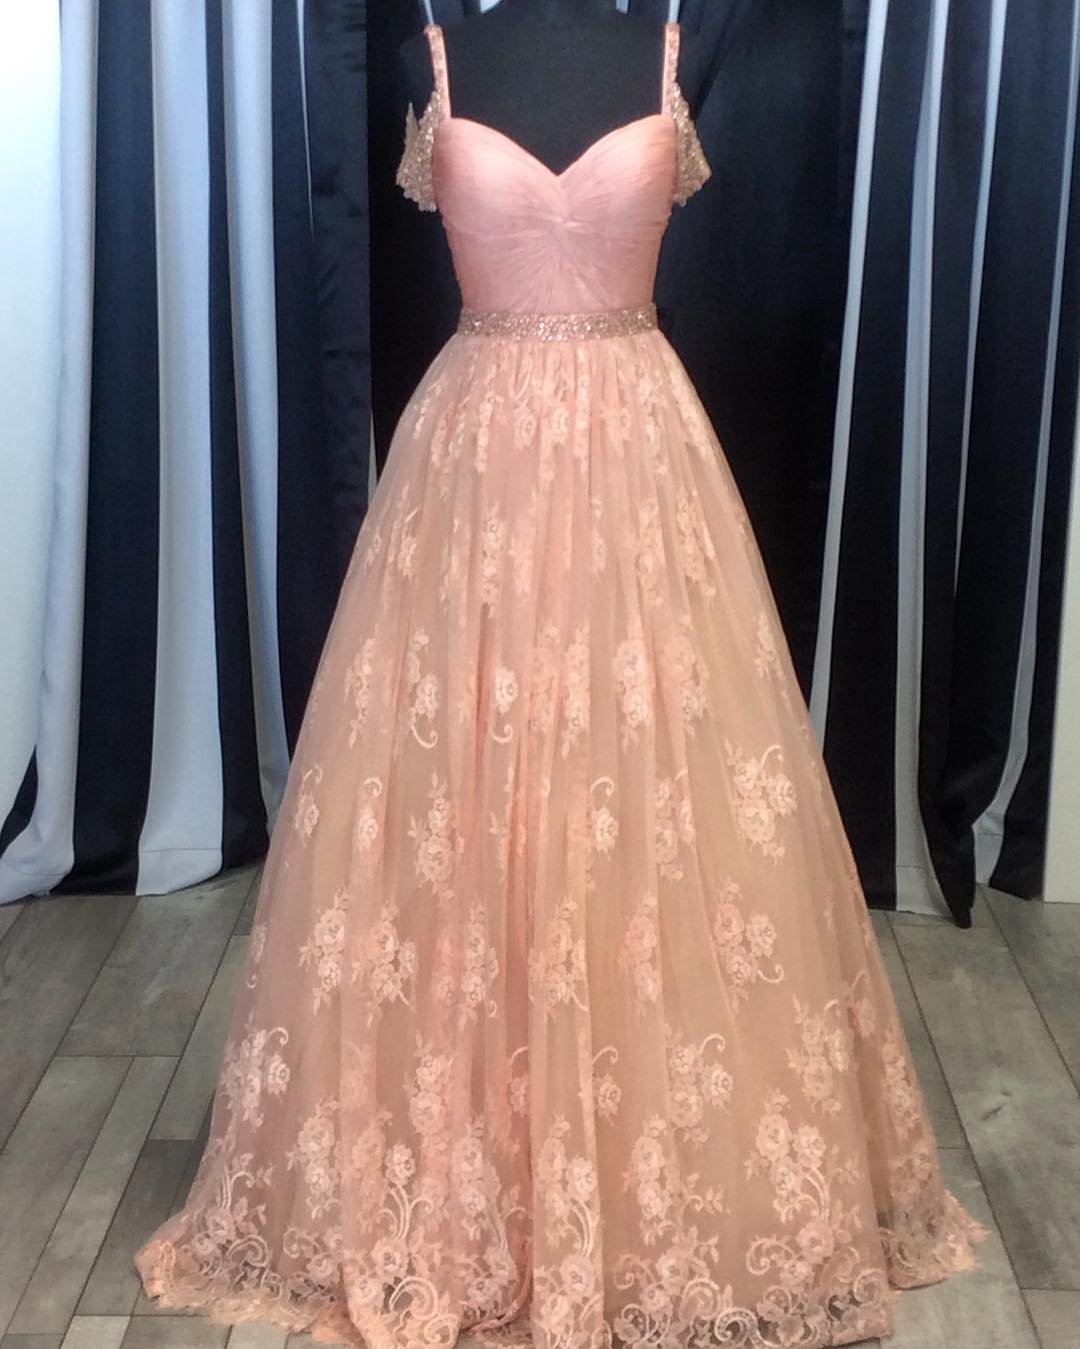 966c99f8d415a New Arrival Prom Dress,Modest Prom Dress,blush pink lace ball gowns prom  dress 2017 women's sweetheart formal dress with beaded straps